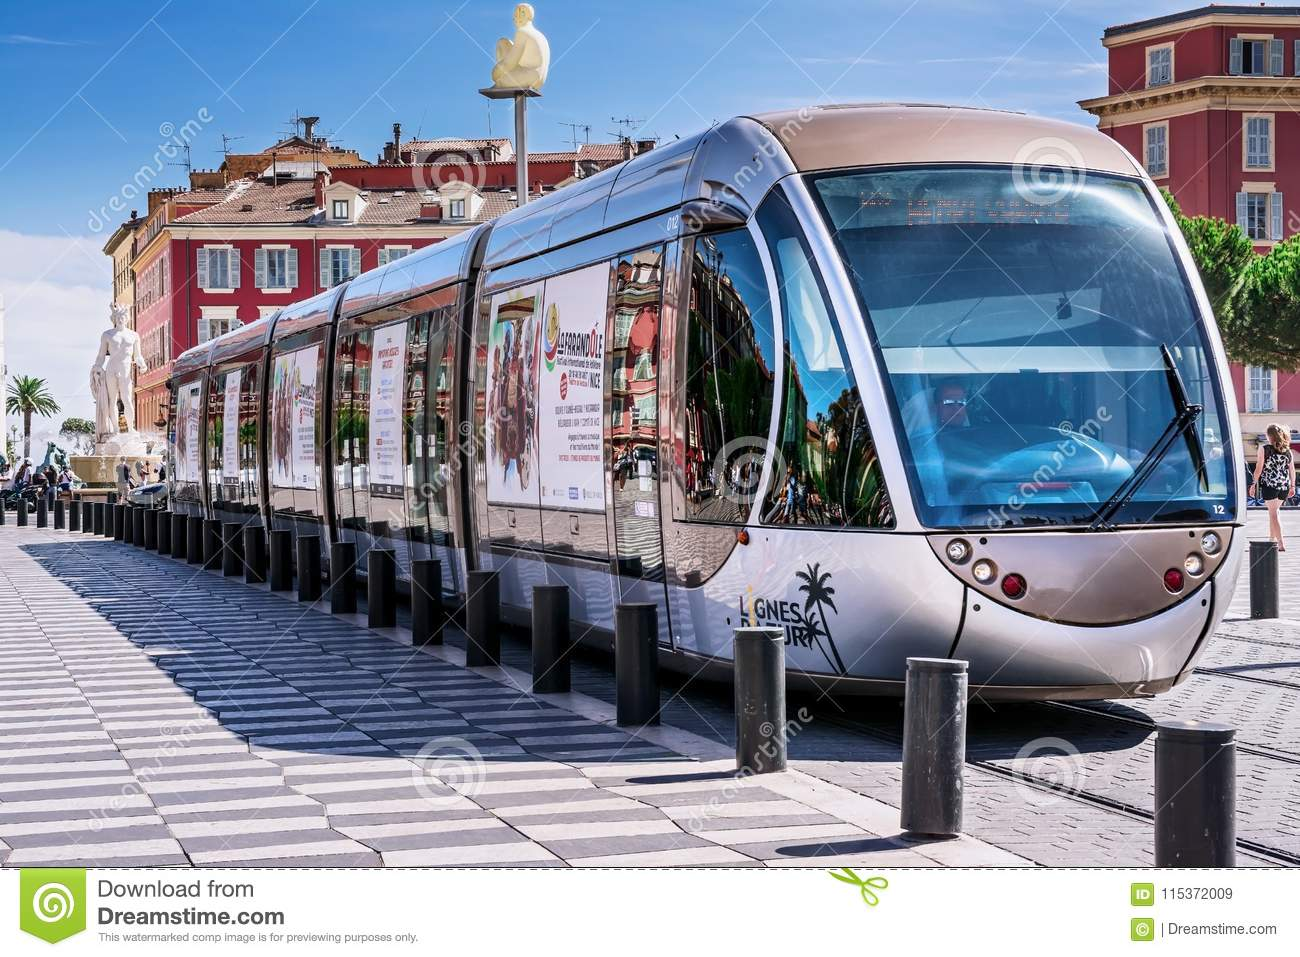 Nice, Alpes-Maritimes department,French Riviera,August 11, 2017, Place Massena.Public transport on the streets of Nice, tram at t